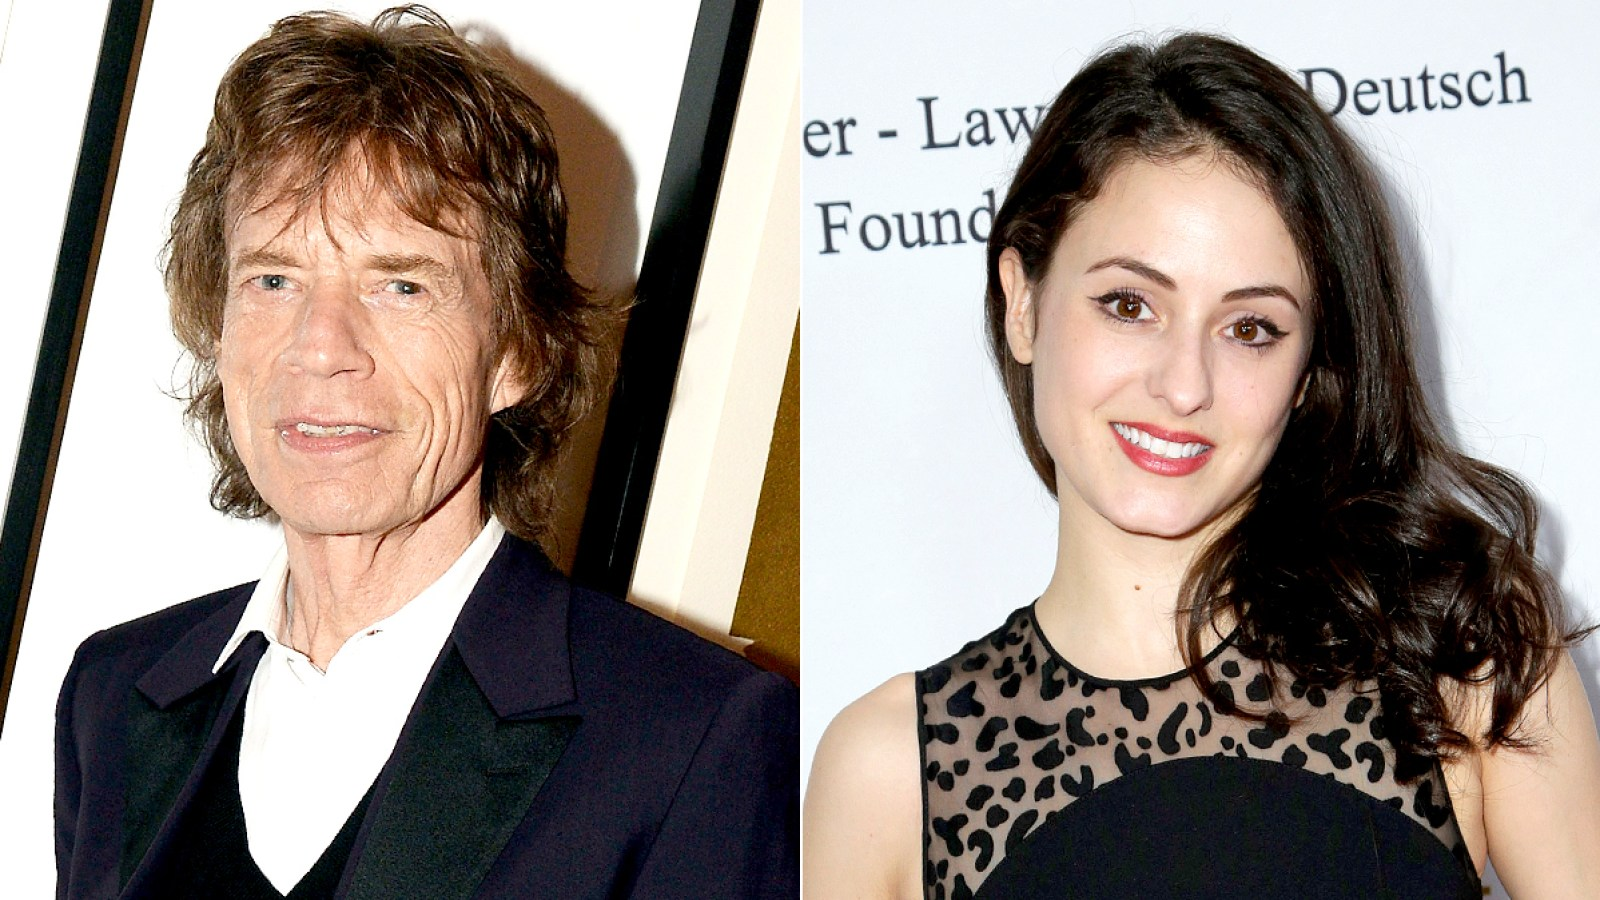 Mick Jagger Welcomes Eighth Child, Is a Dad Again at Age 73